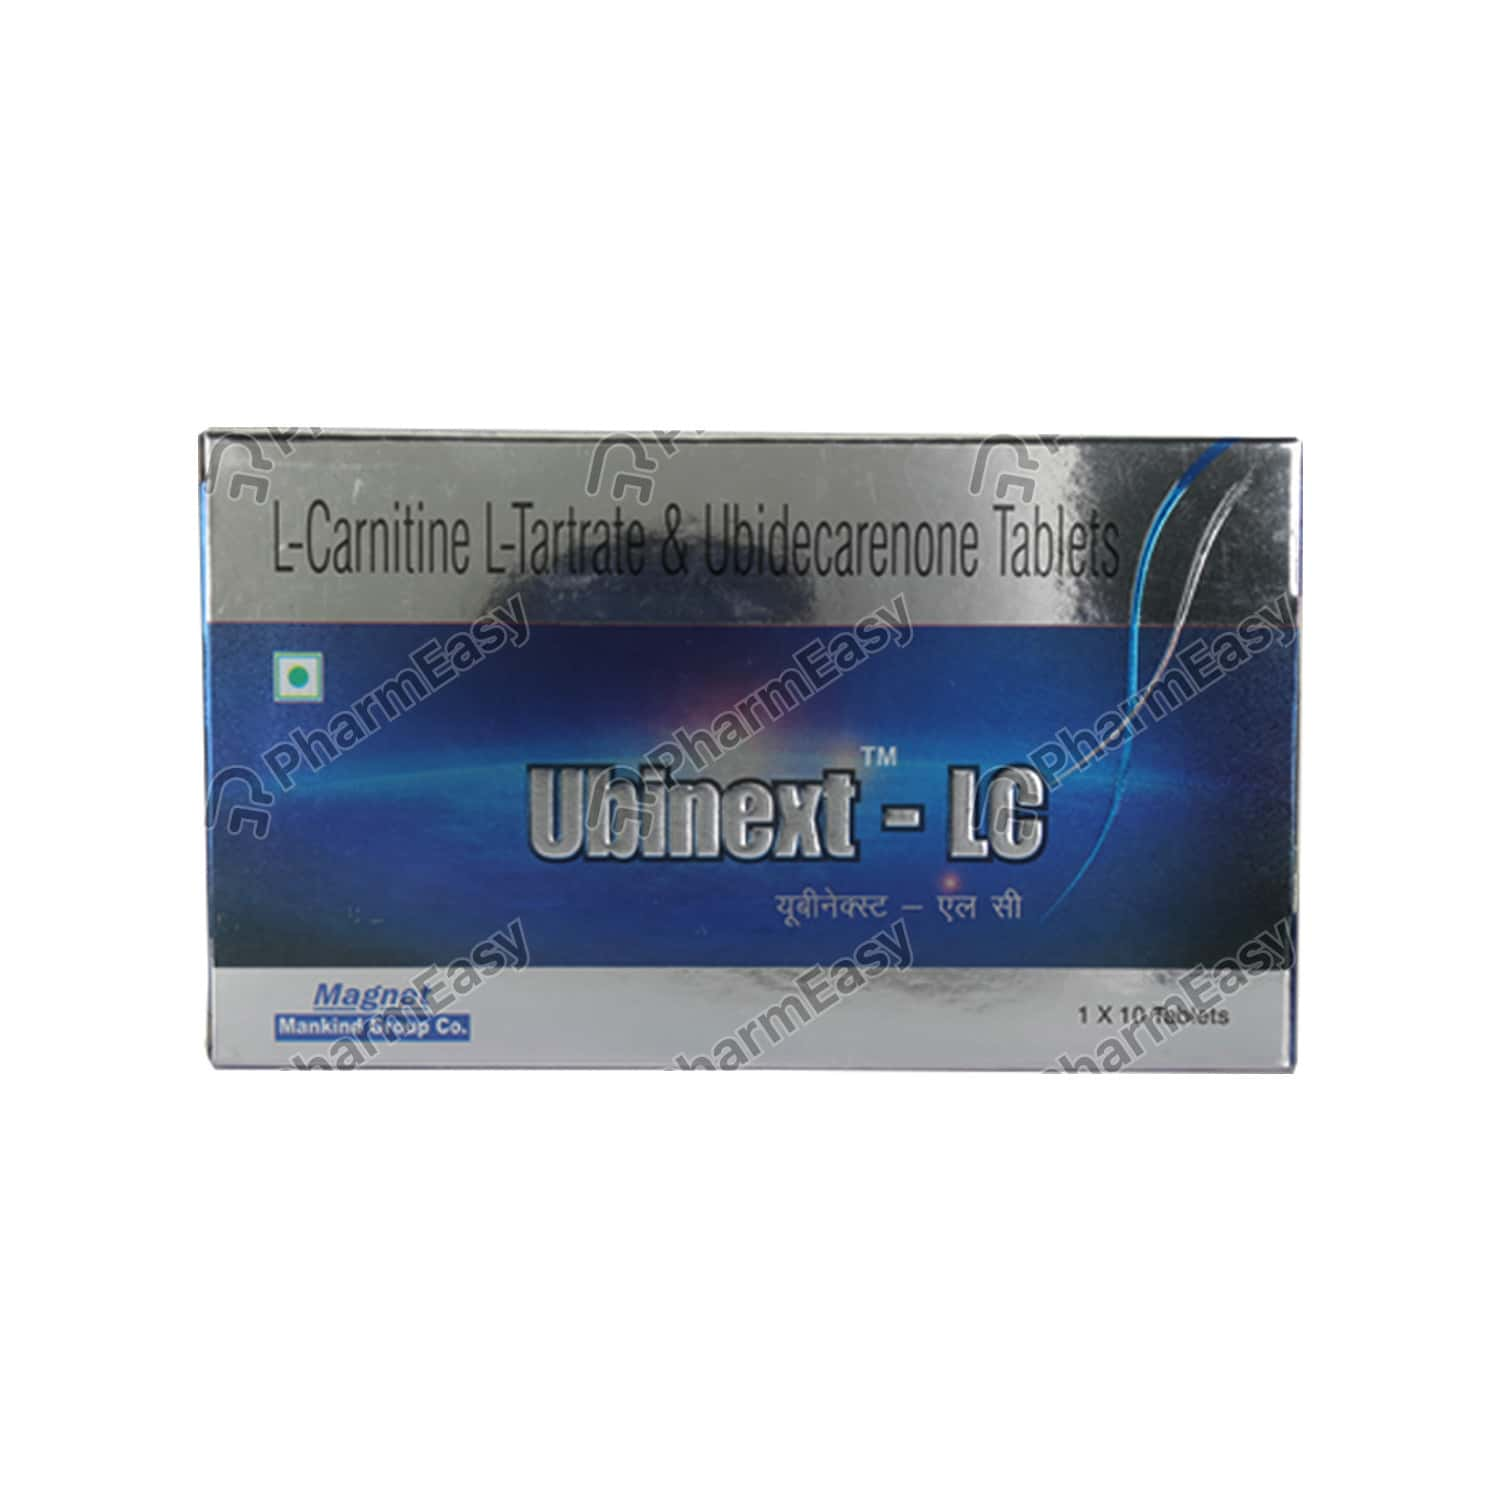 Ubinext Lc Strip Of 10 Tablets